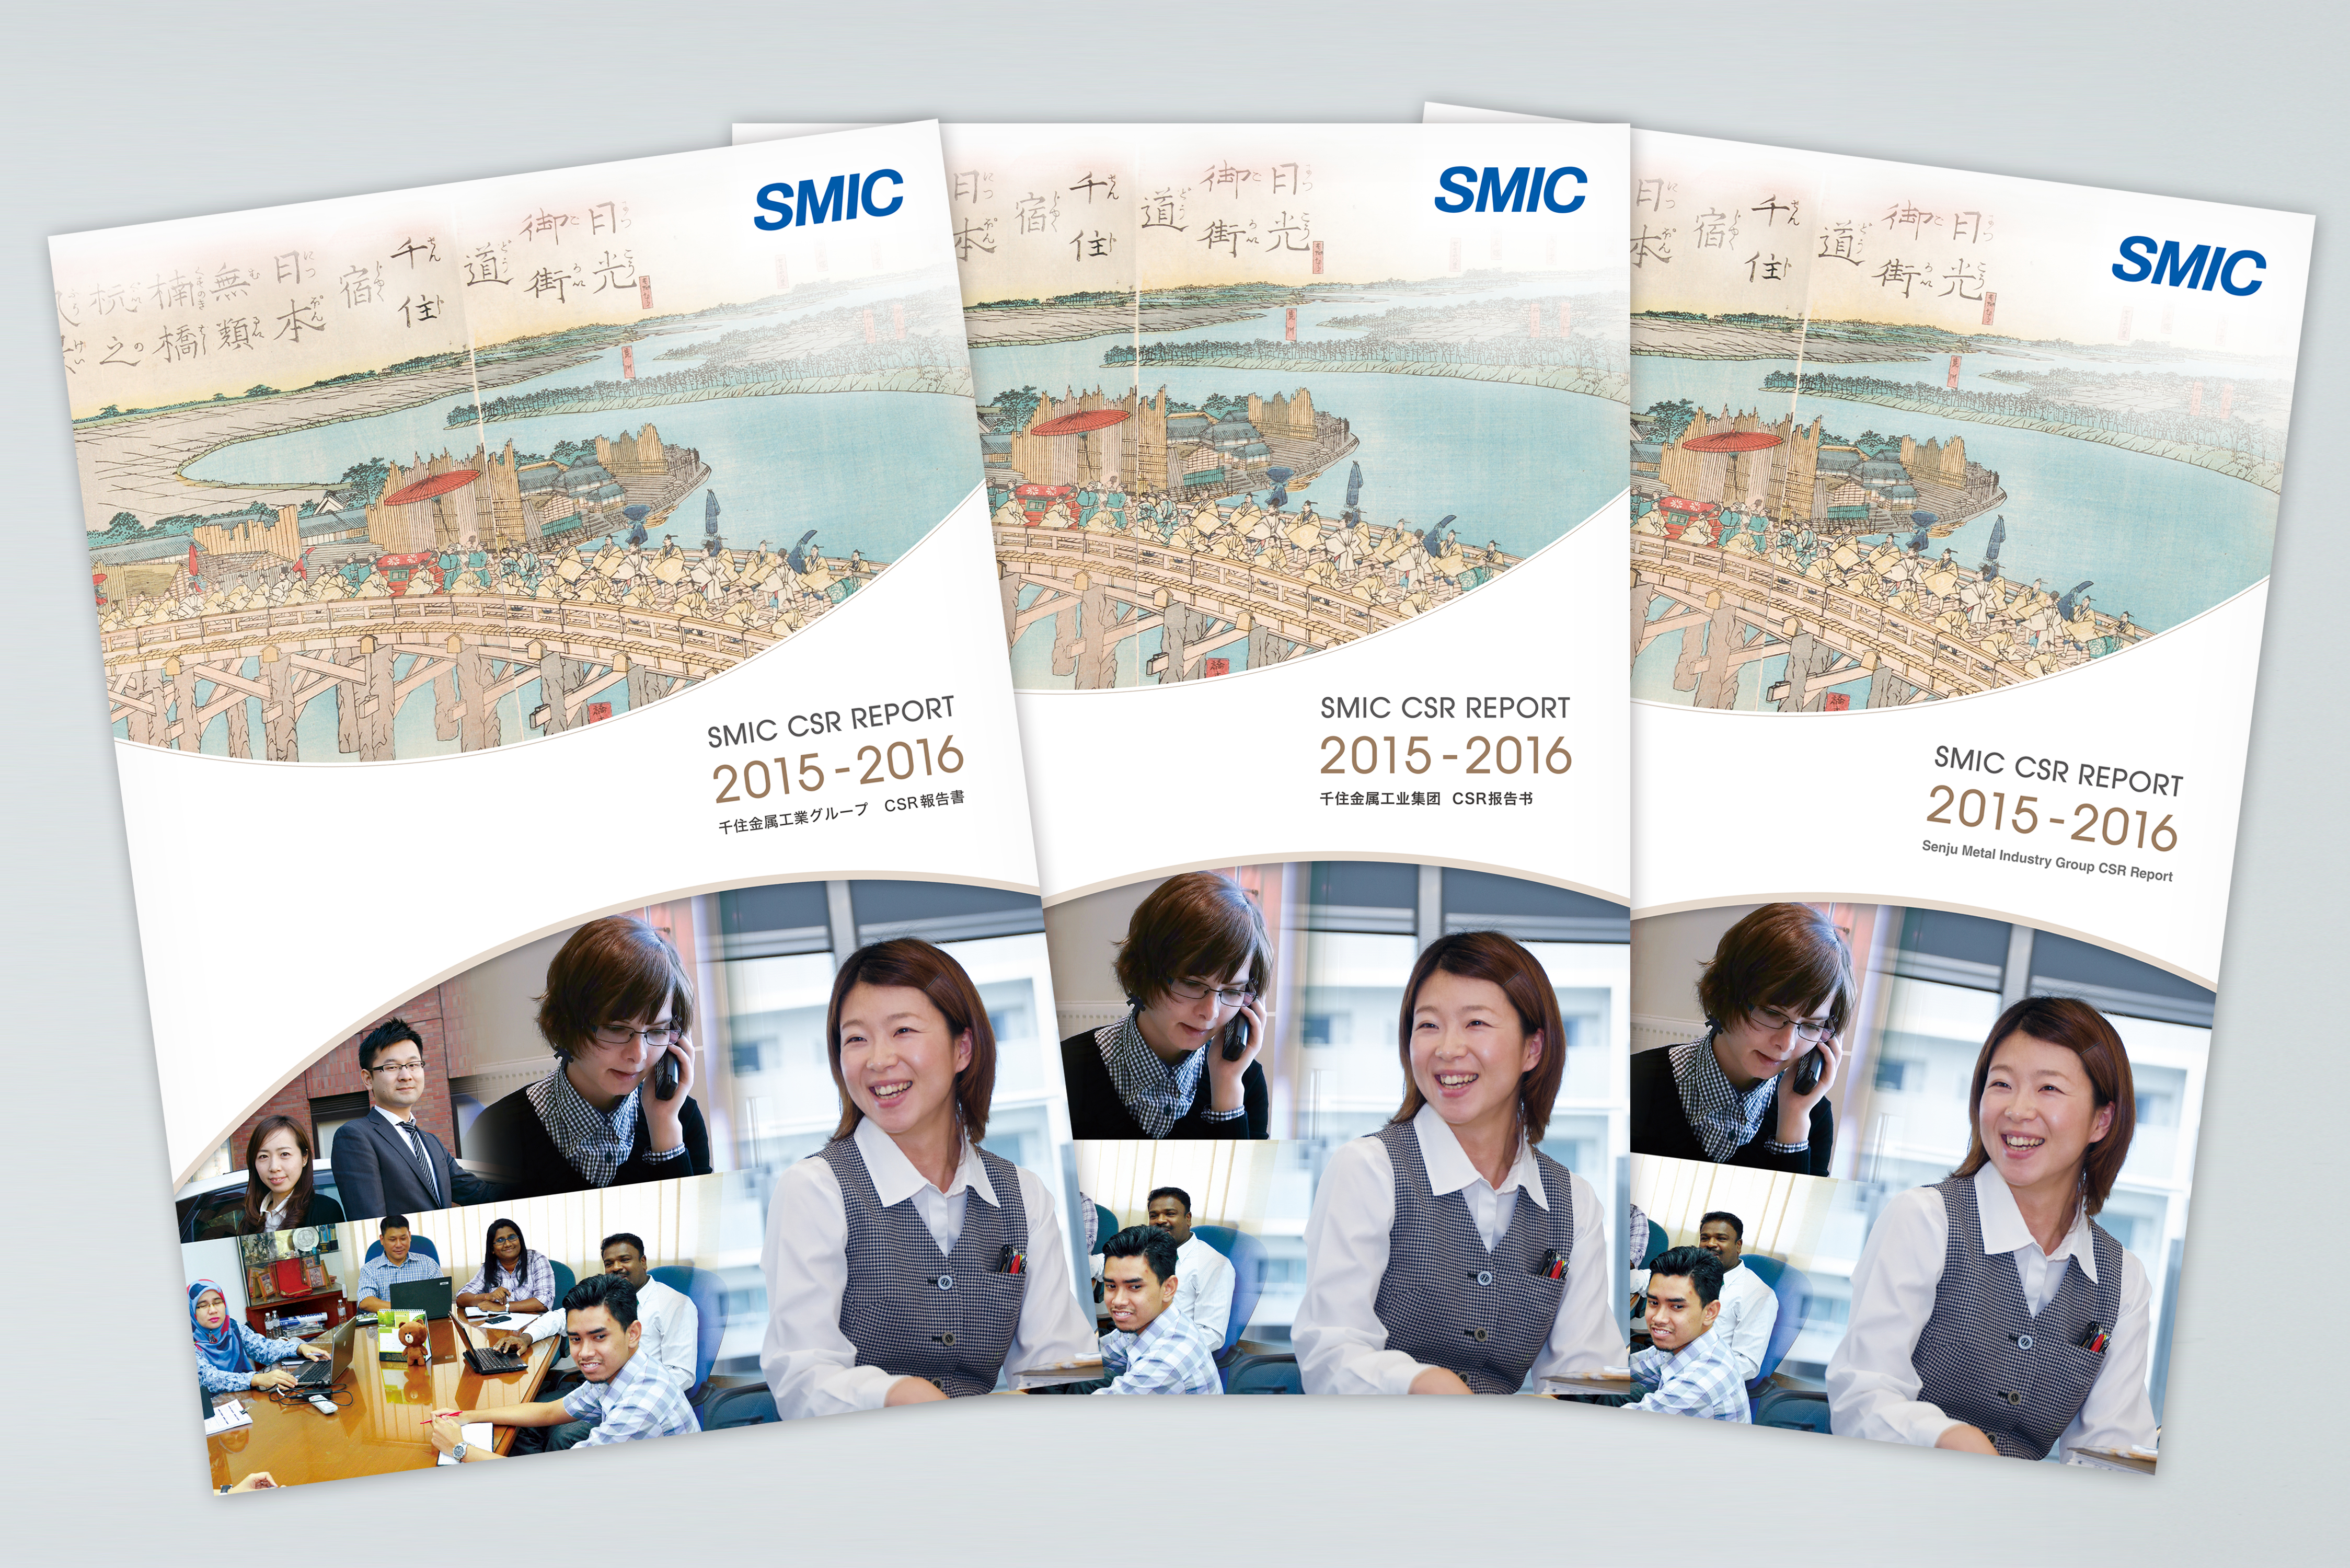 smic annual report Best annual reports annual report on annual reports this year: 2018 industry rankings annual reports in selected industries for a year ended in 2017 take part.